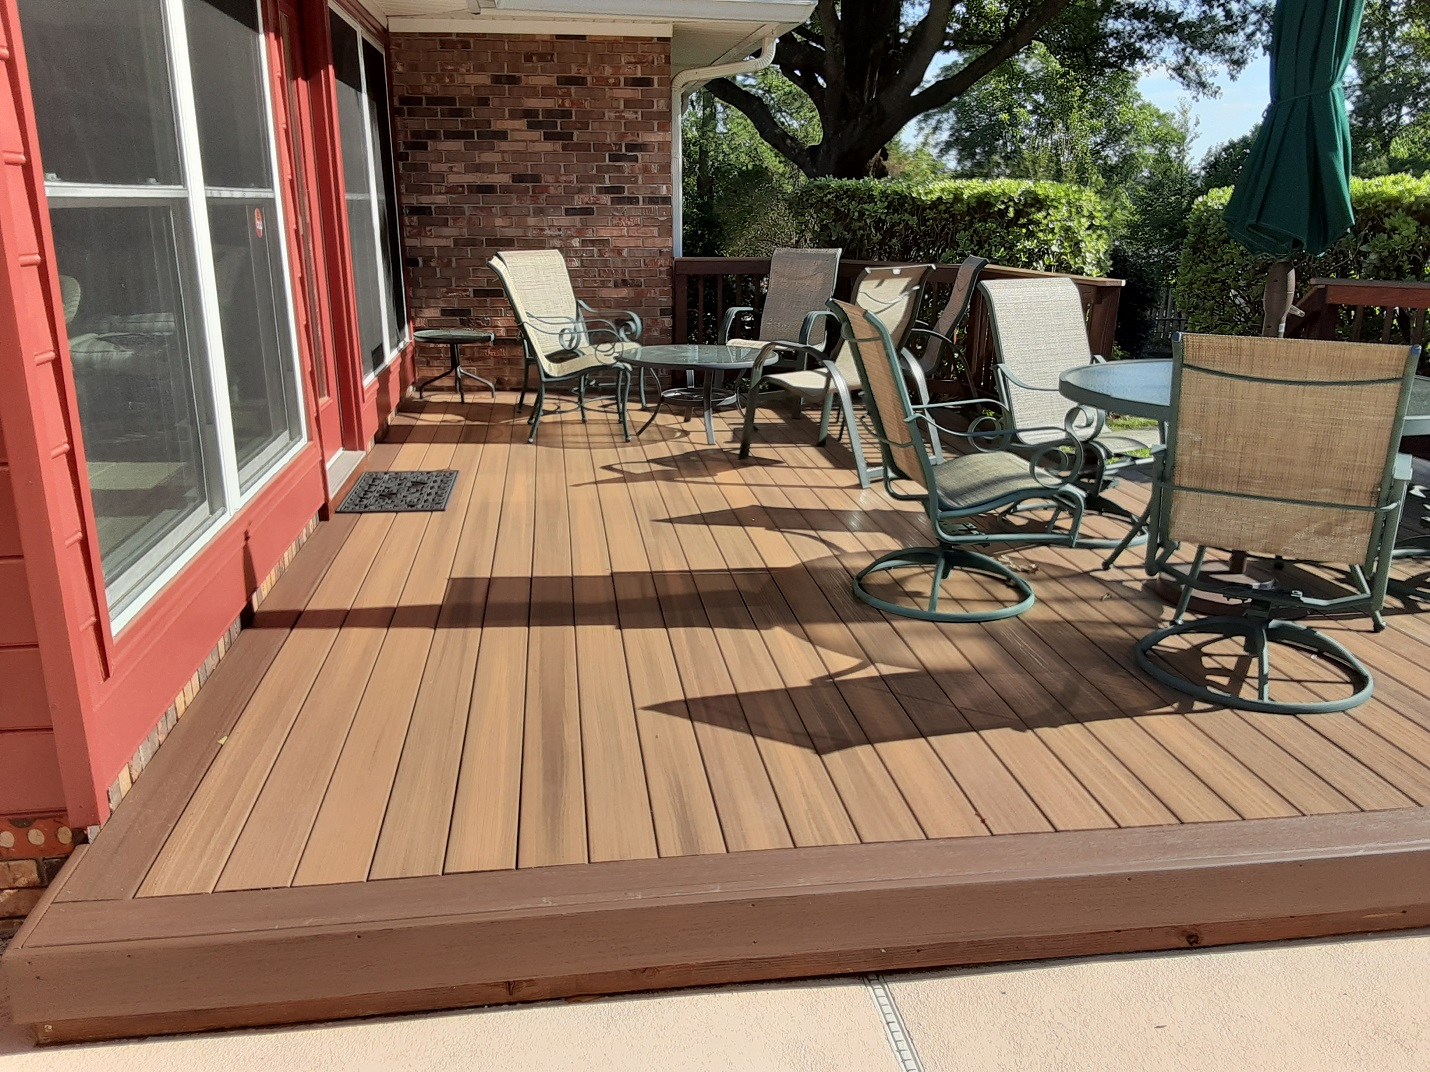 The-client-loves-her-new-deck